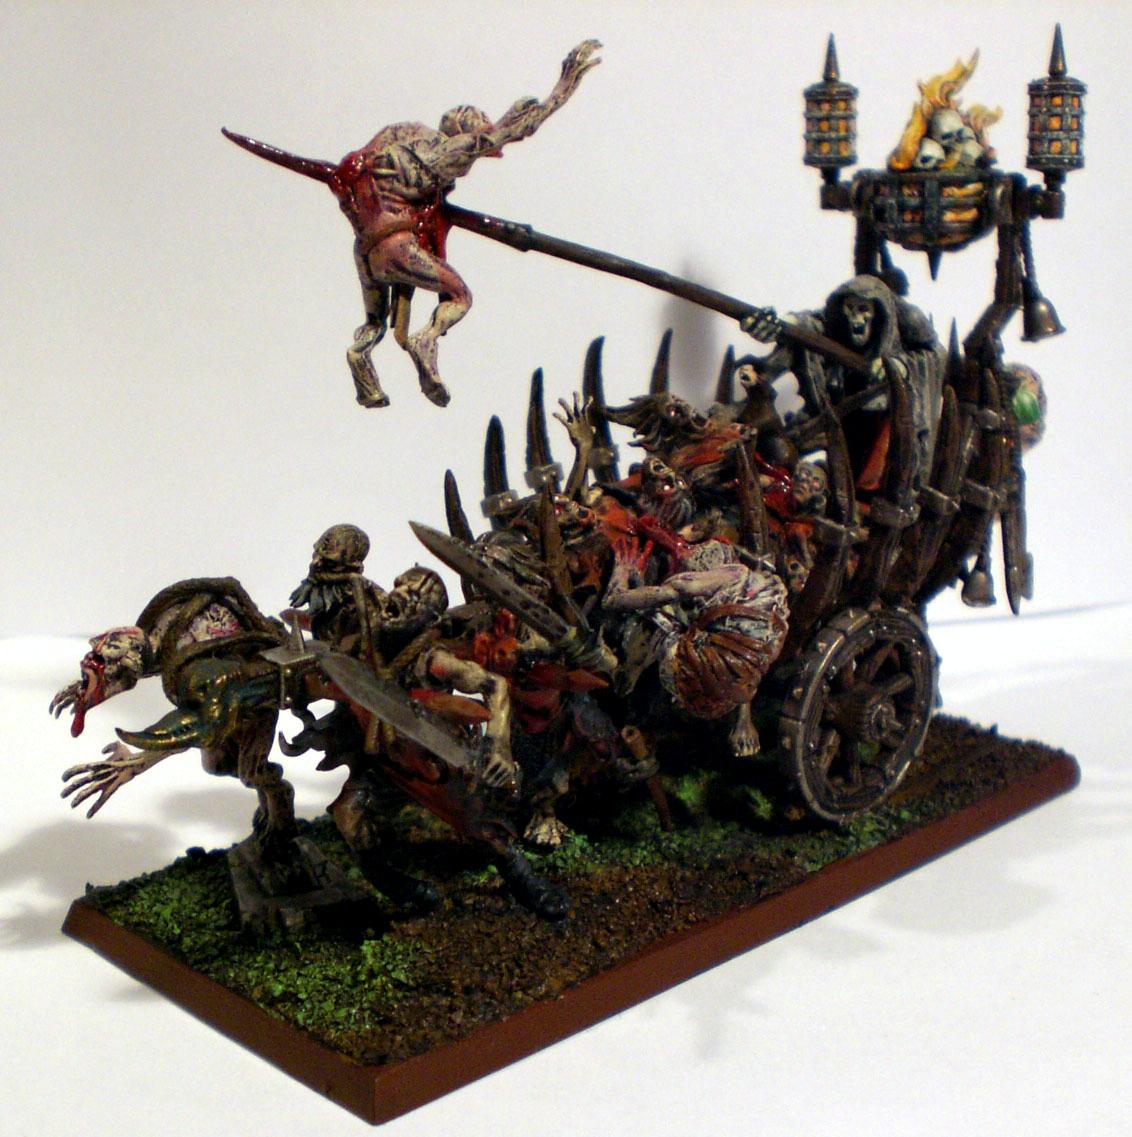 Cart, Corpse, Corpse Cart, Fire, Vampire Counts, Zombie